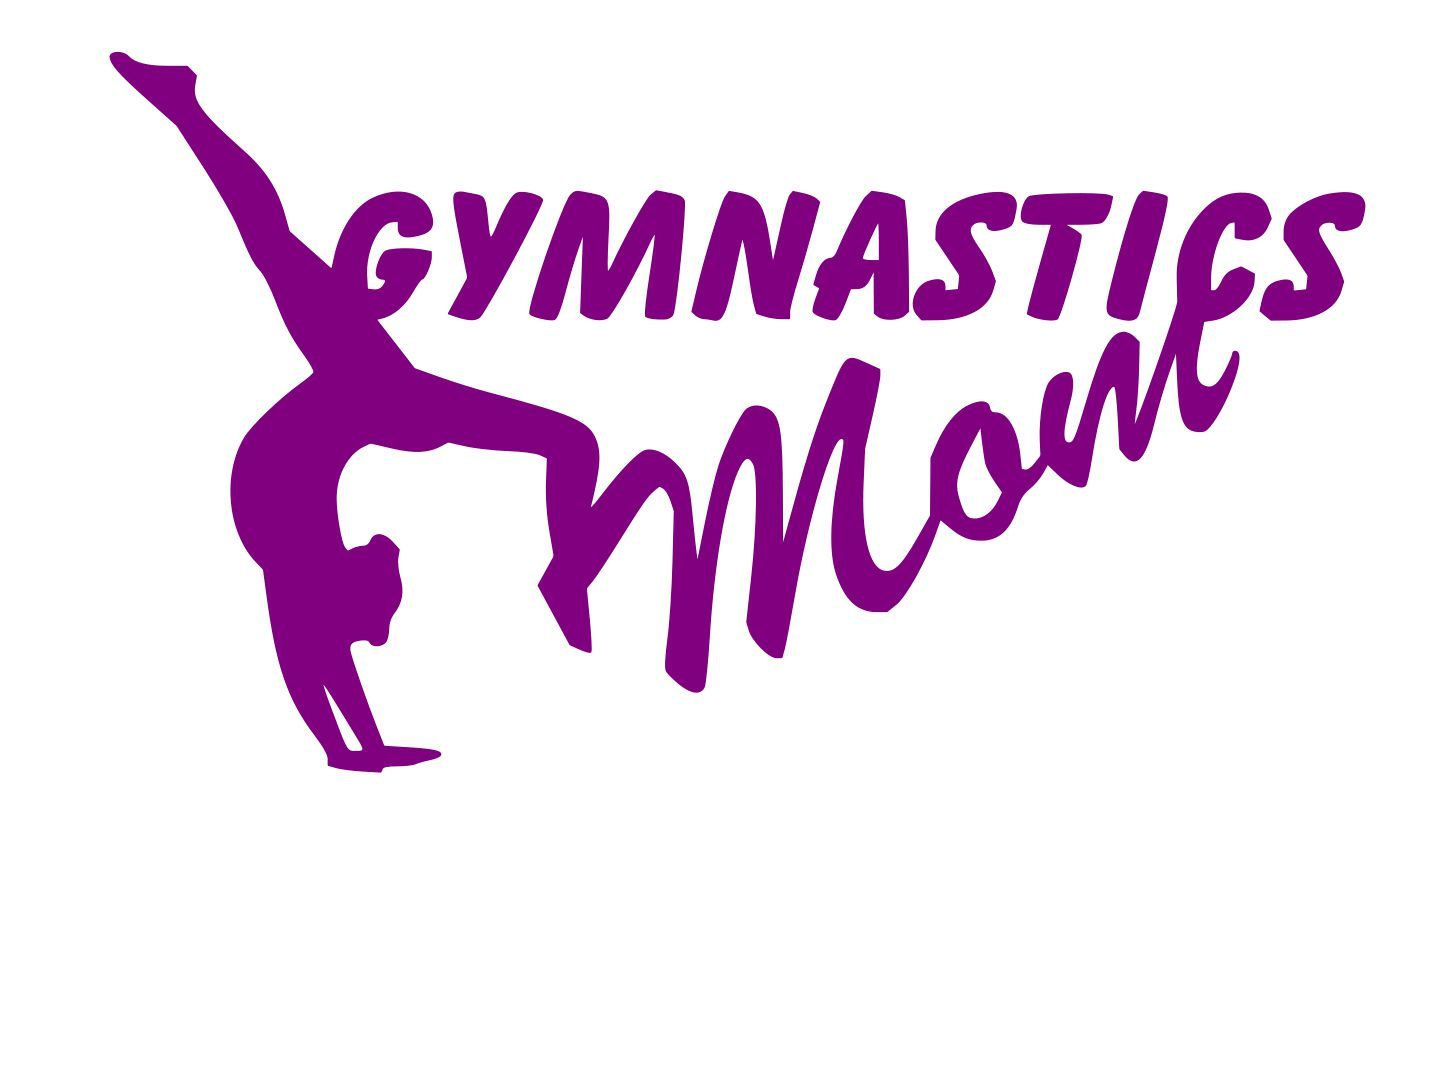 Gymnasticsmomcardecalvarietyofcolorsalsoinbybaywear gymnasticsmomcardecalvarietyofcolorsalso silhouette cameo projectscar decalswall amipublicfo Image collections